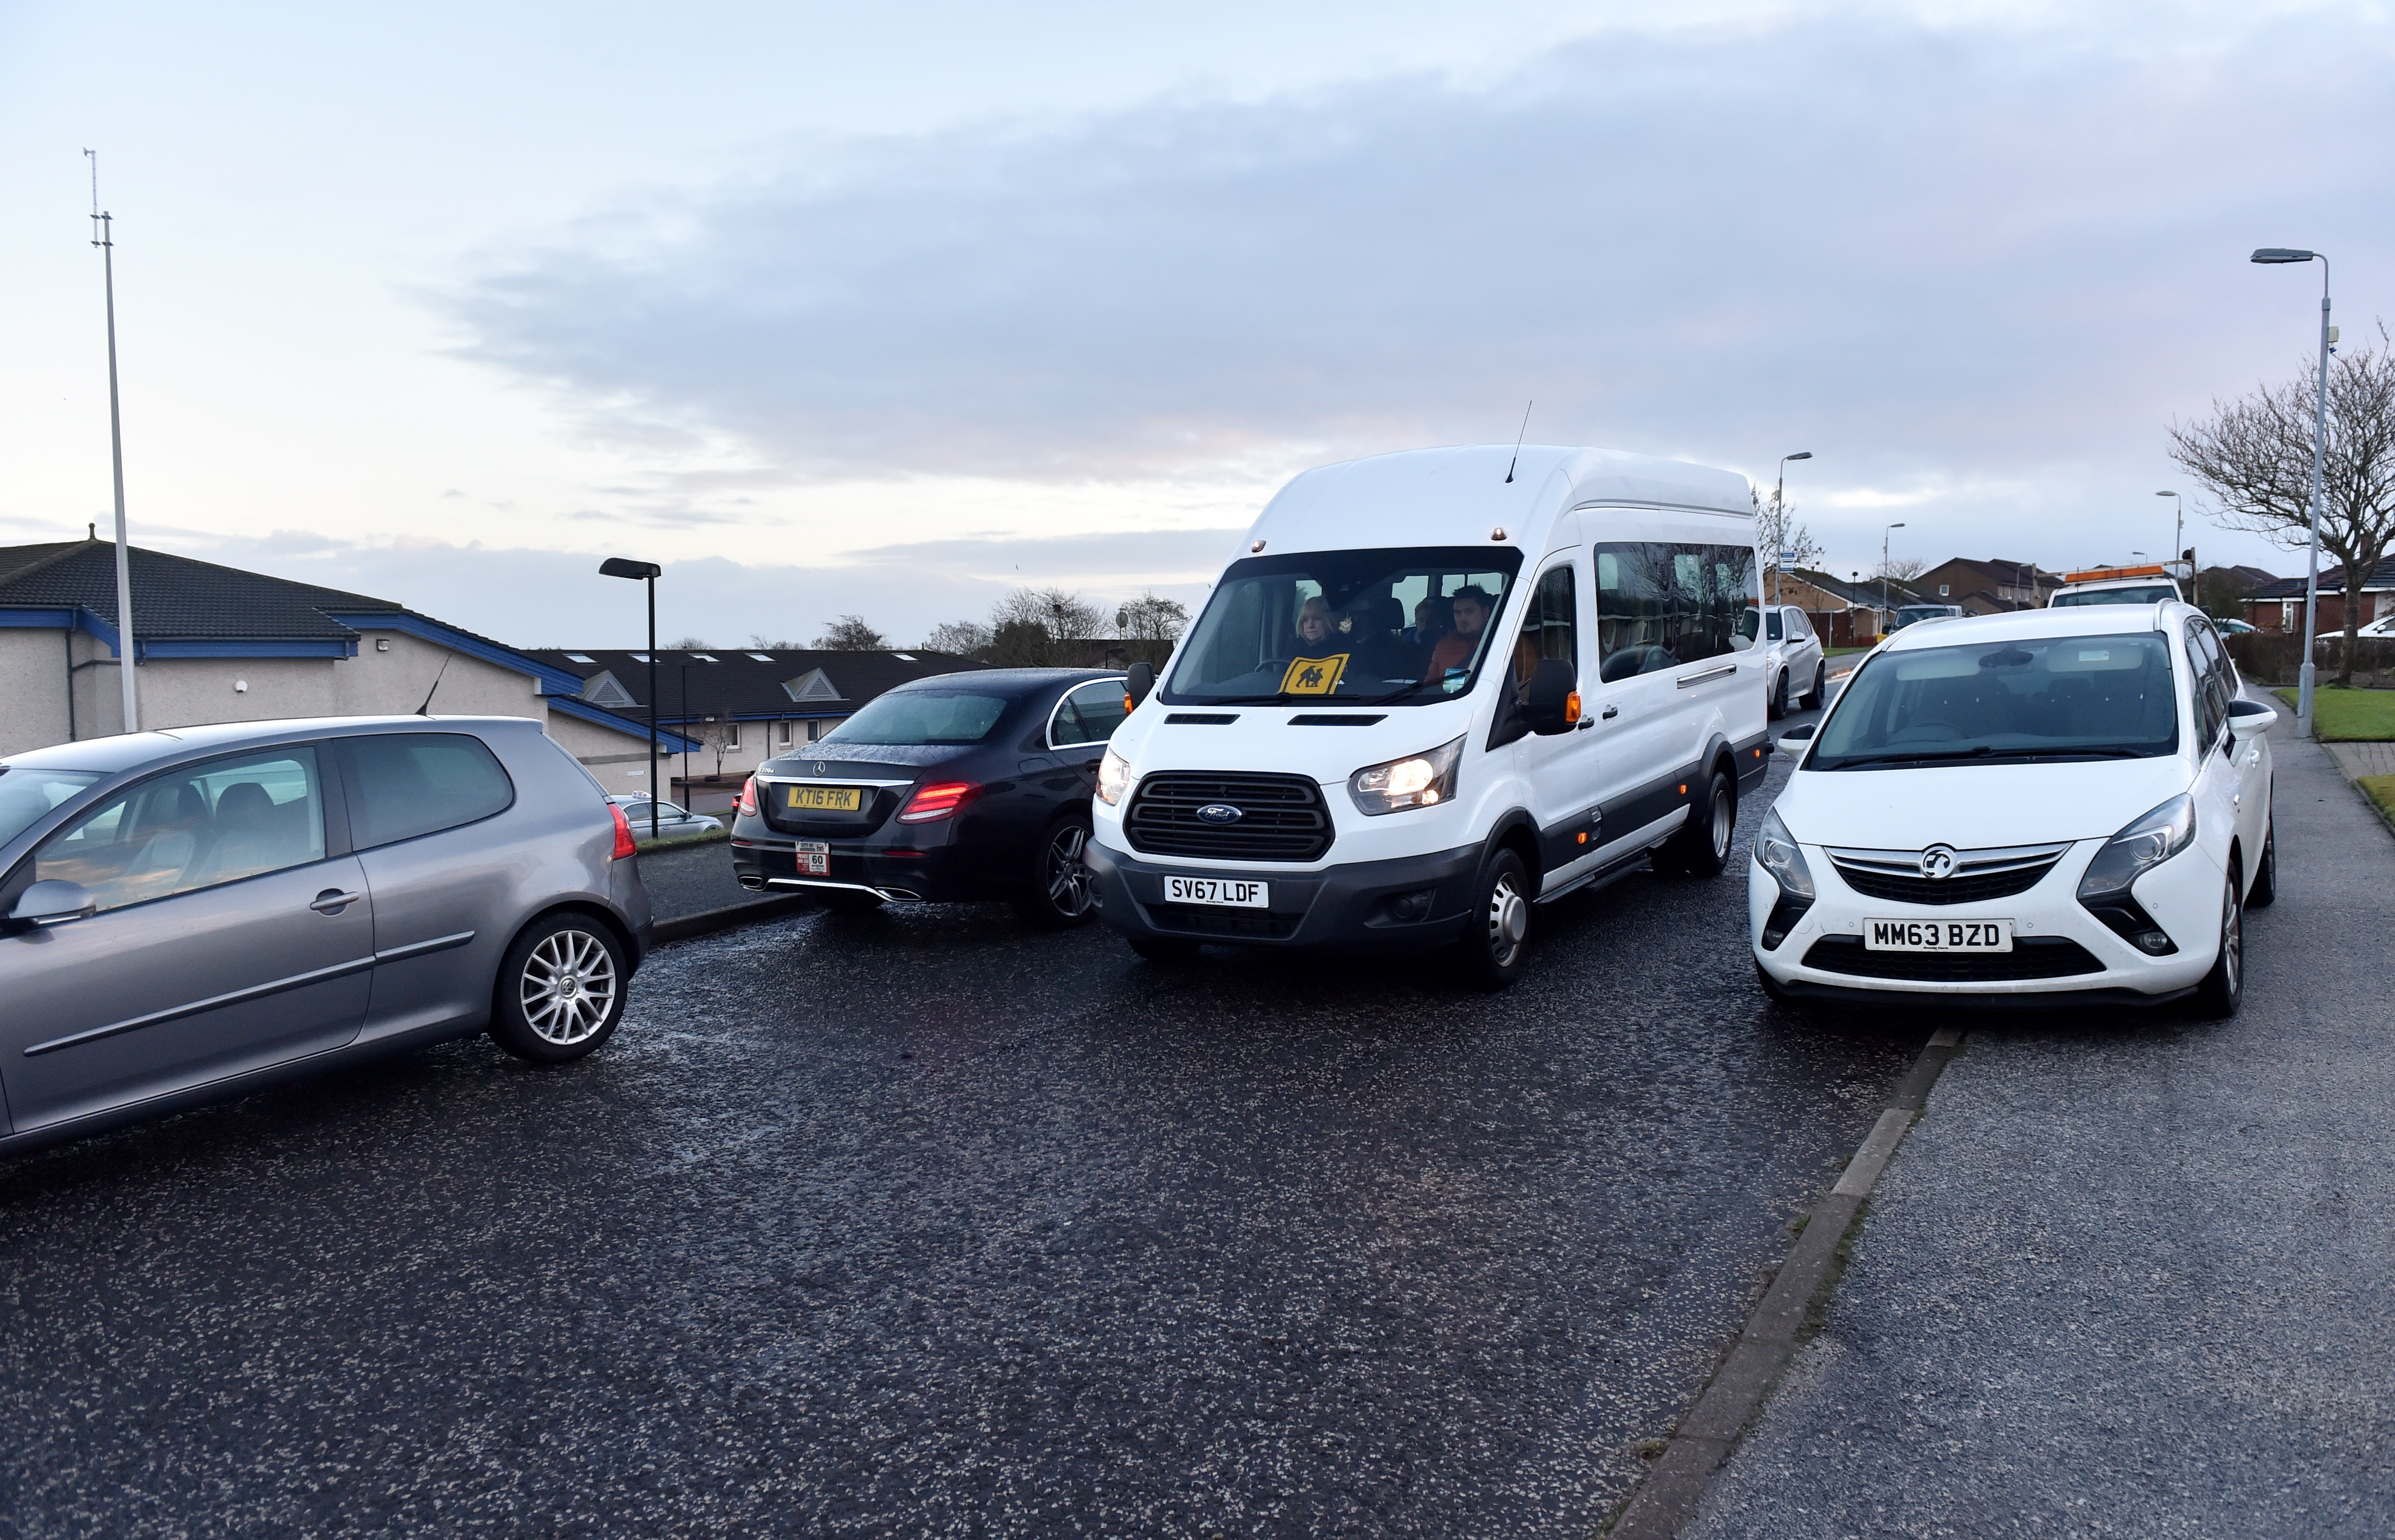 Residents have complained about parents parking irresponsibly outside Newtonhill Primary School